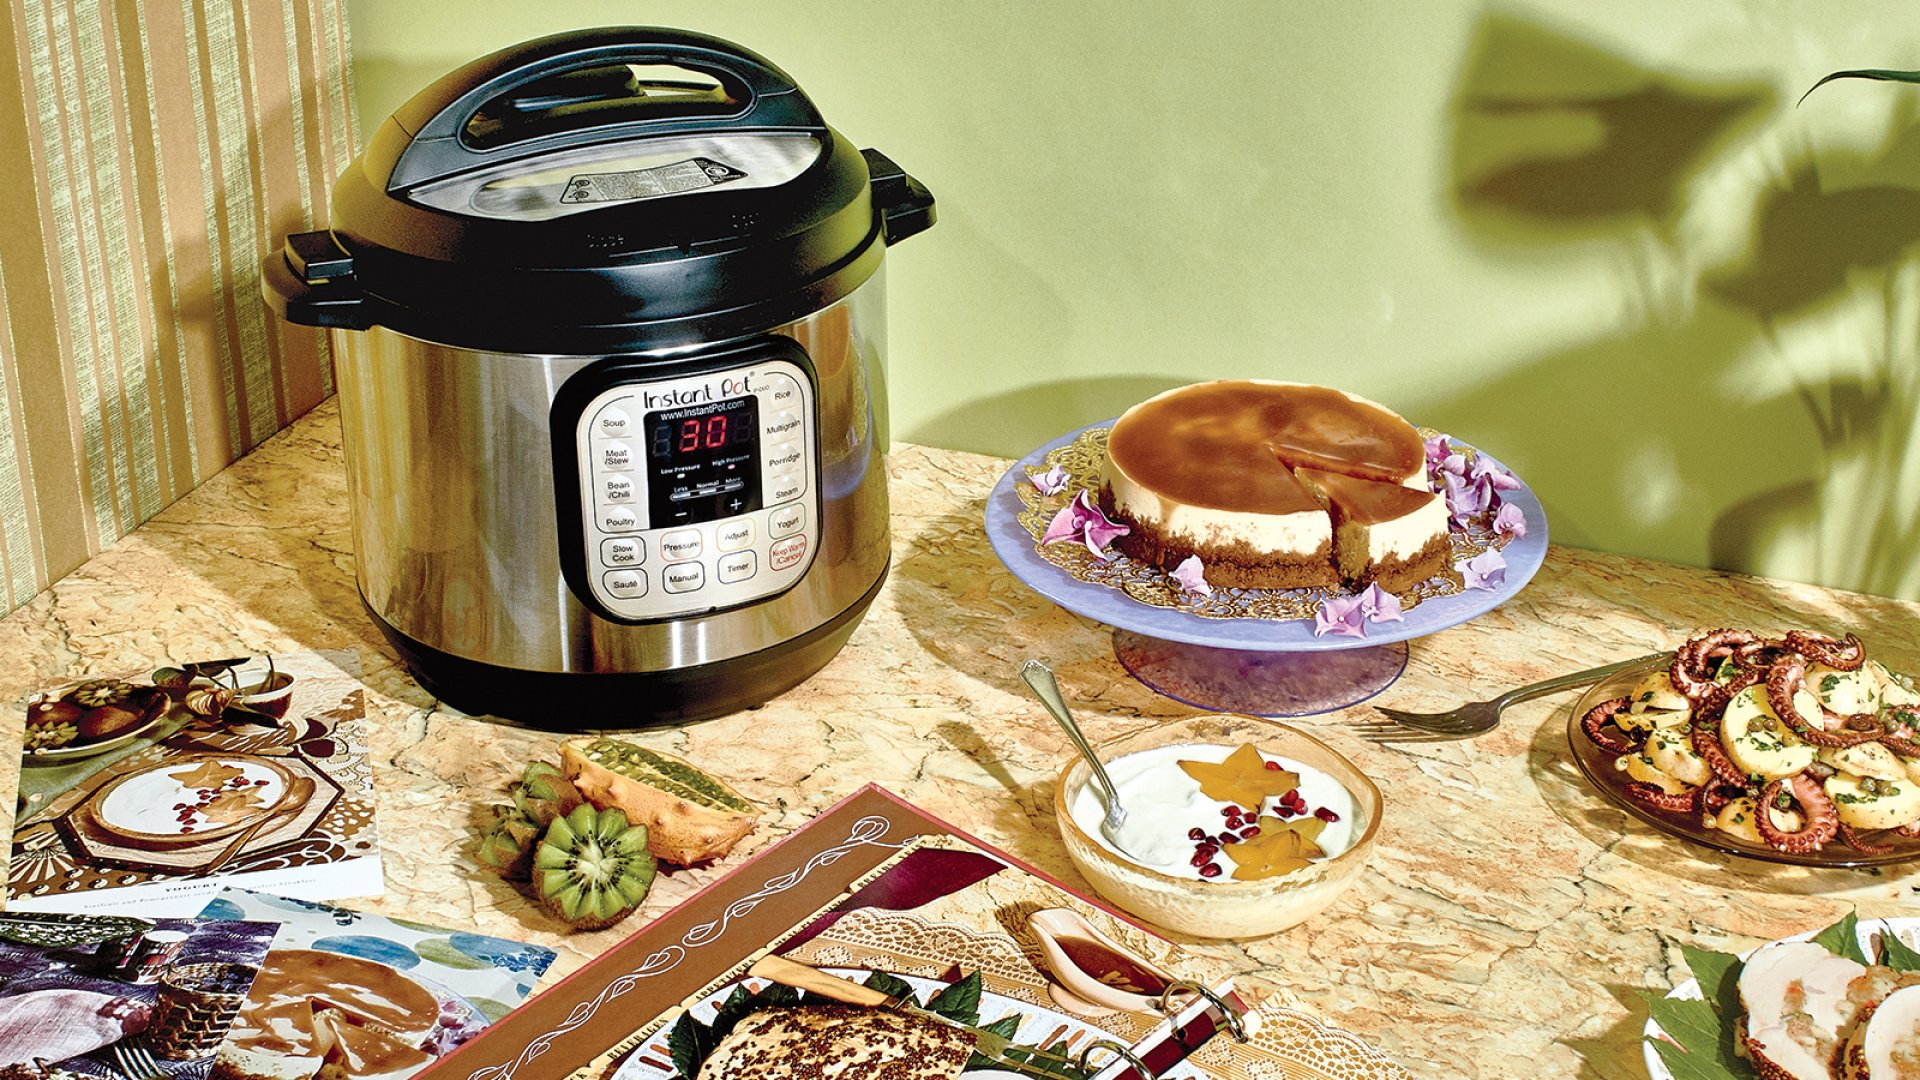 Salted caramel cheesecake, octopus potato salad, and homemade yogurt are just a few of the goodies that can be autonomously whipped up in the Instant Pot.